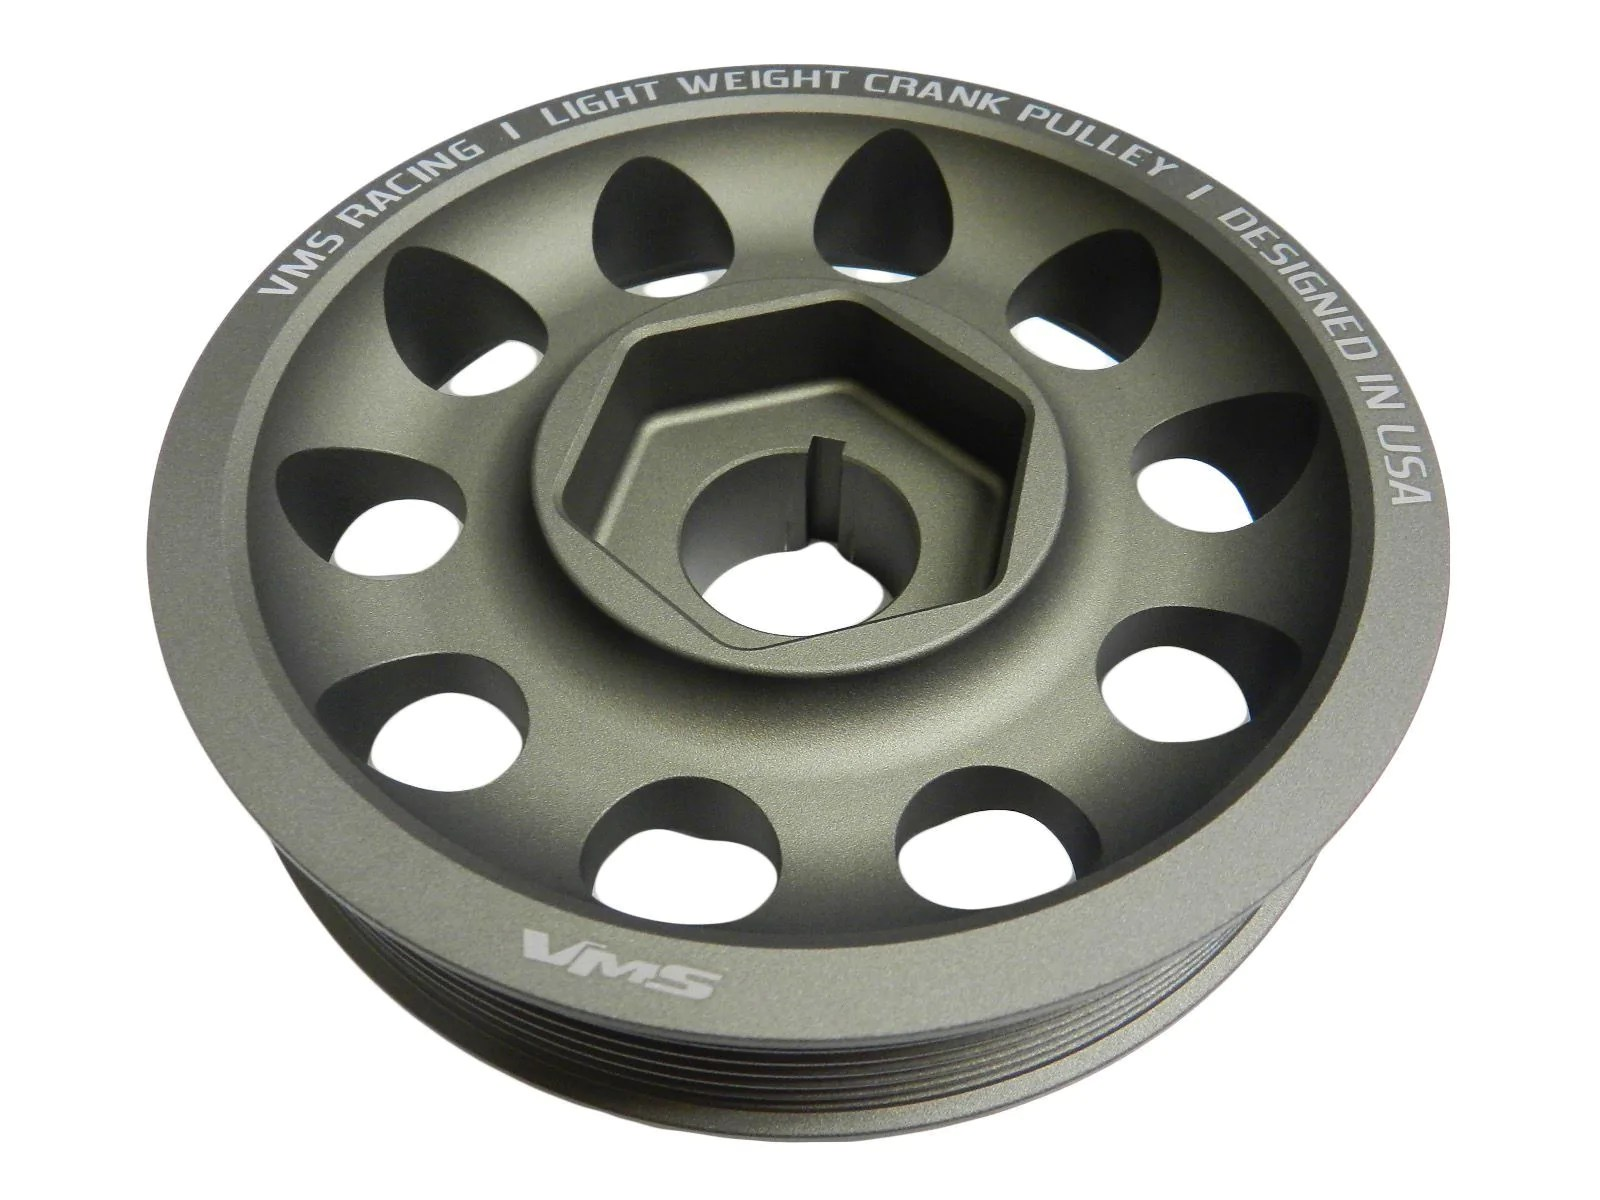 small resolution of 02 04 acura rsx type s light weight oem size aluminum crankshaft crank pulley